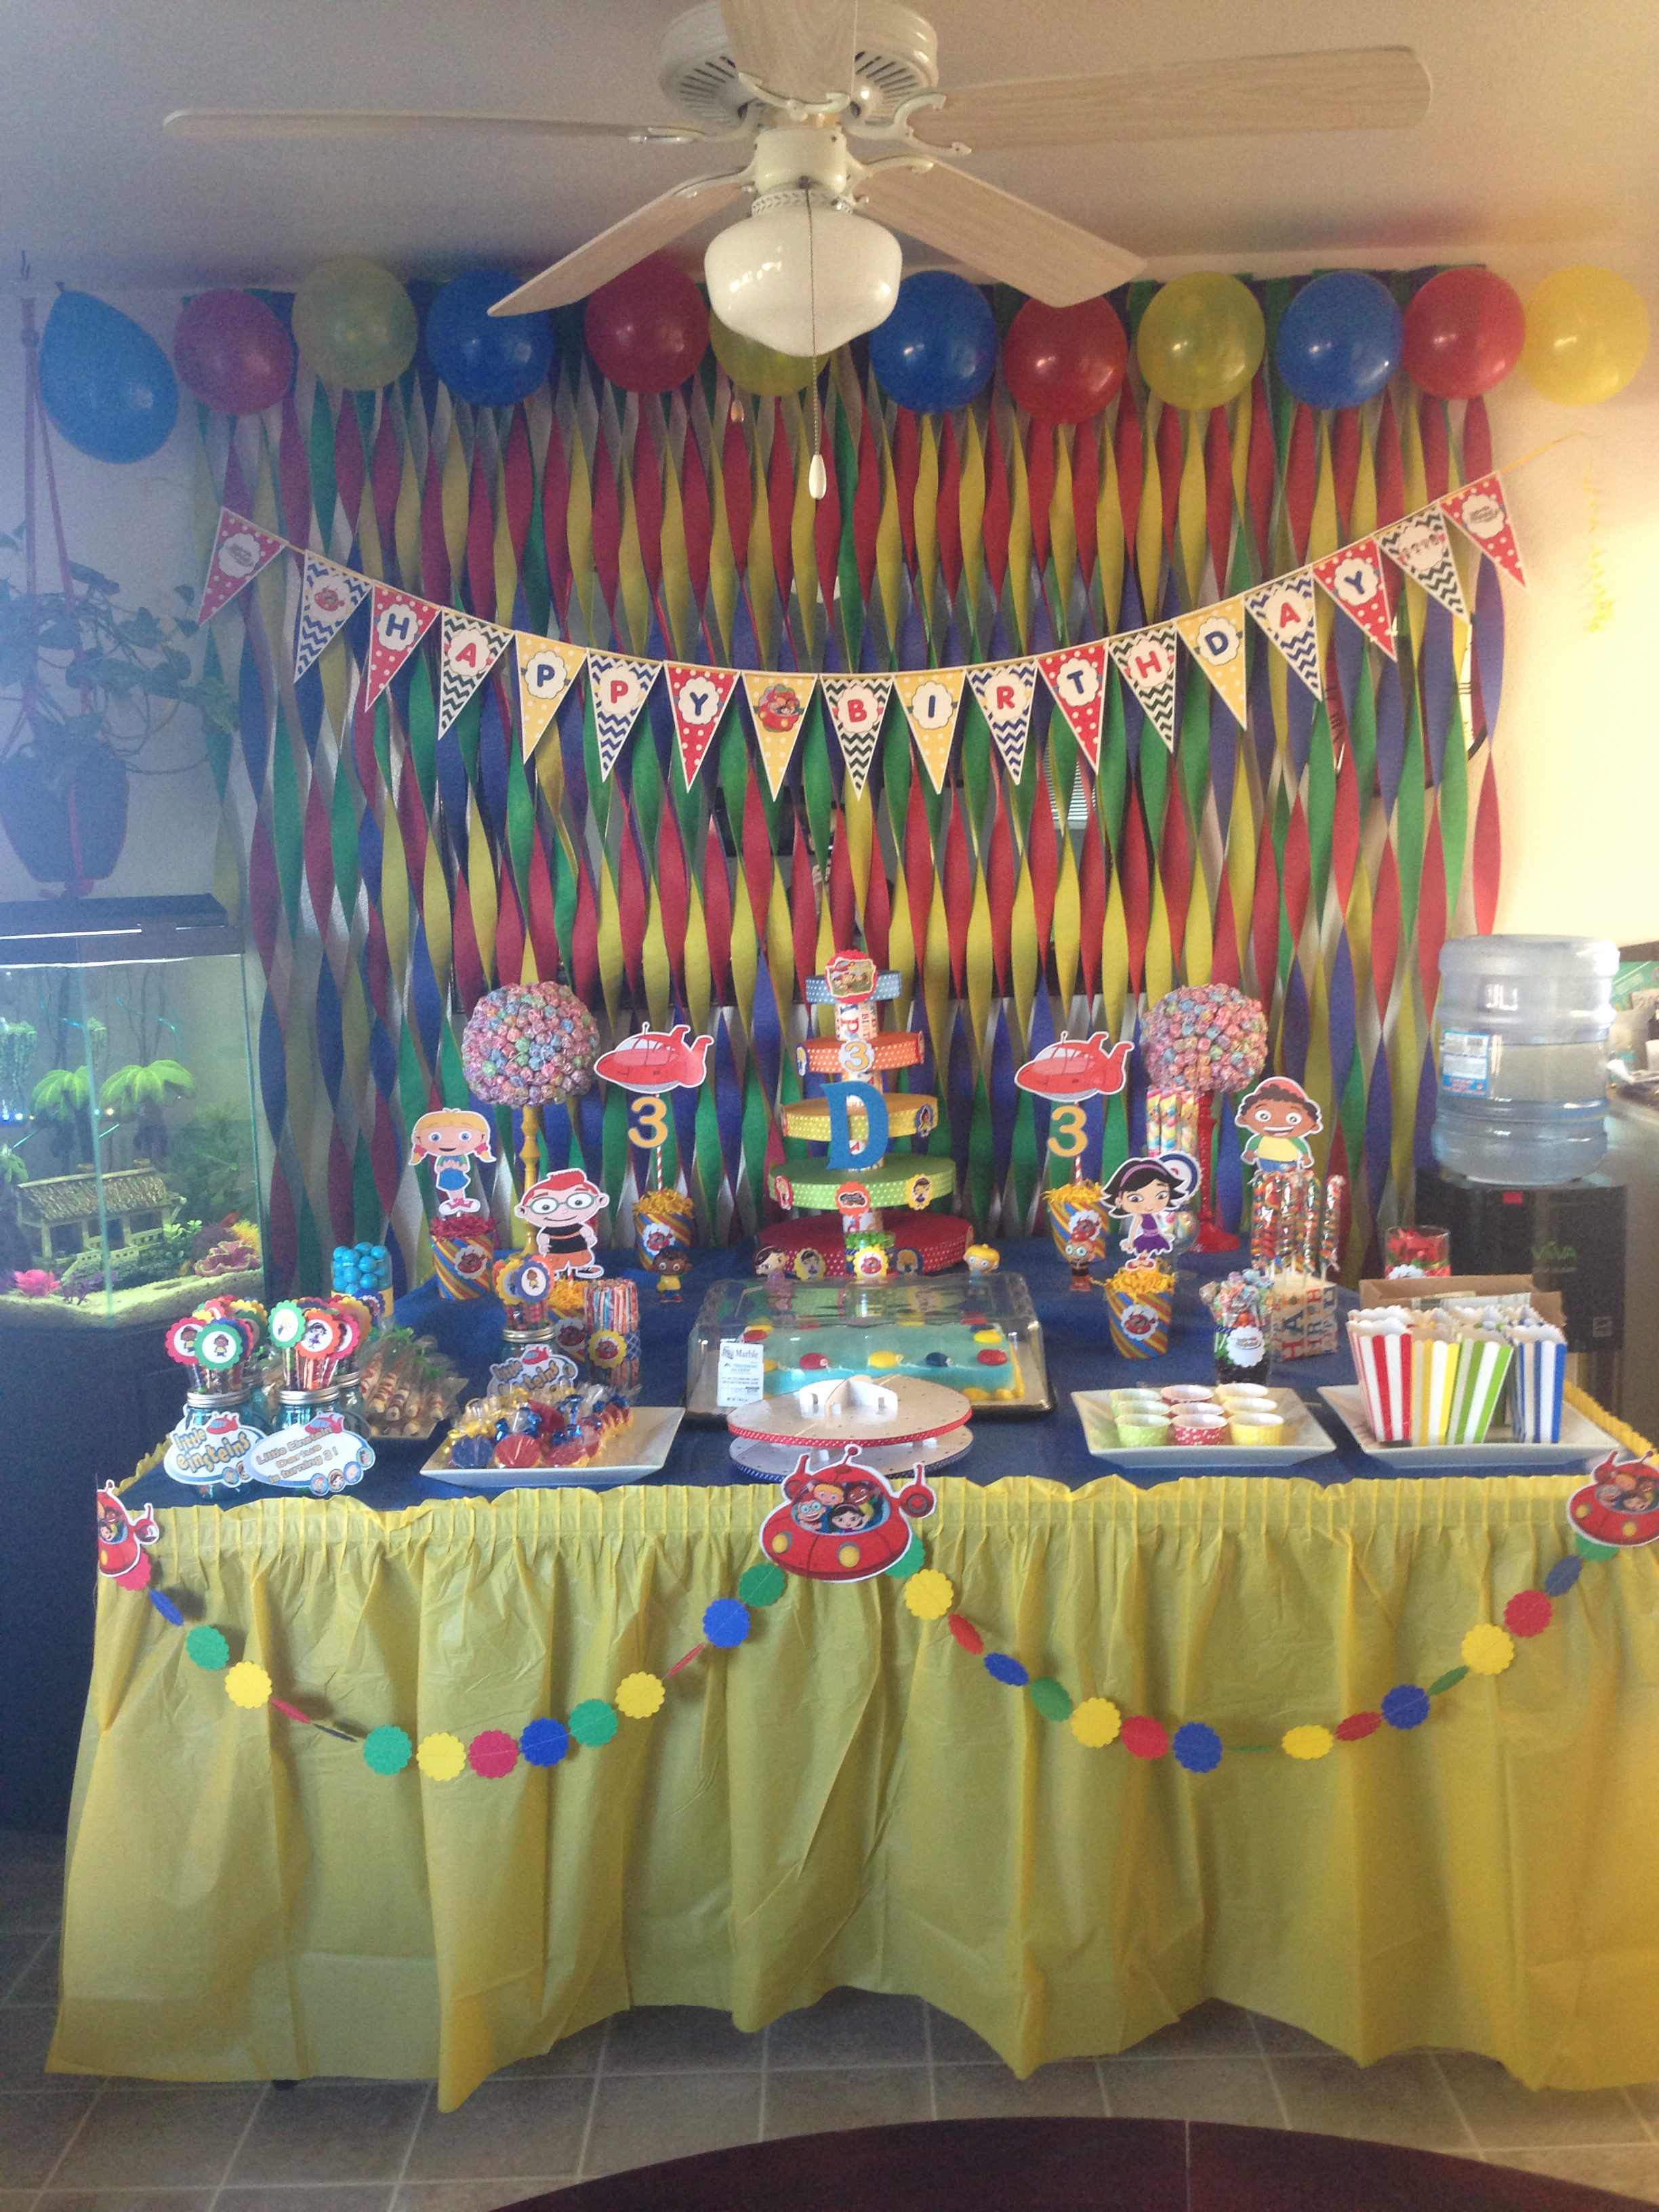 Best ideas about Birthday Party Supplies Online . Save or Pin Little Einsteins party supplies Now.